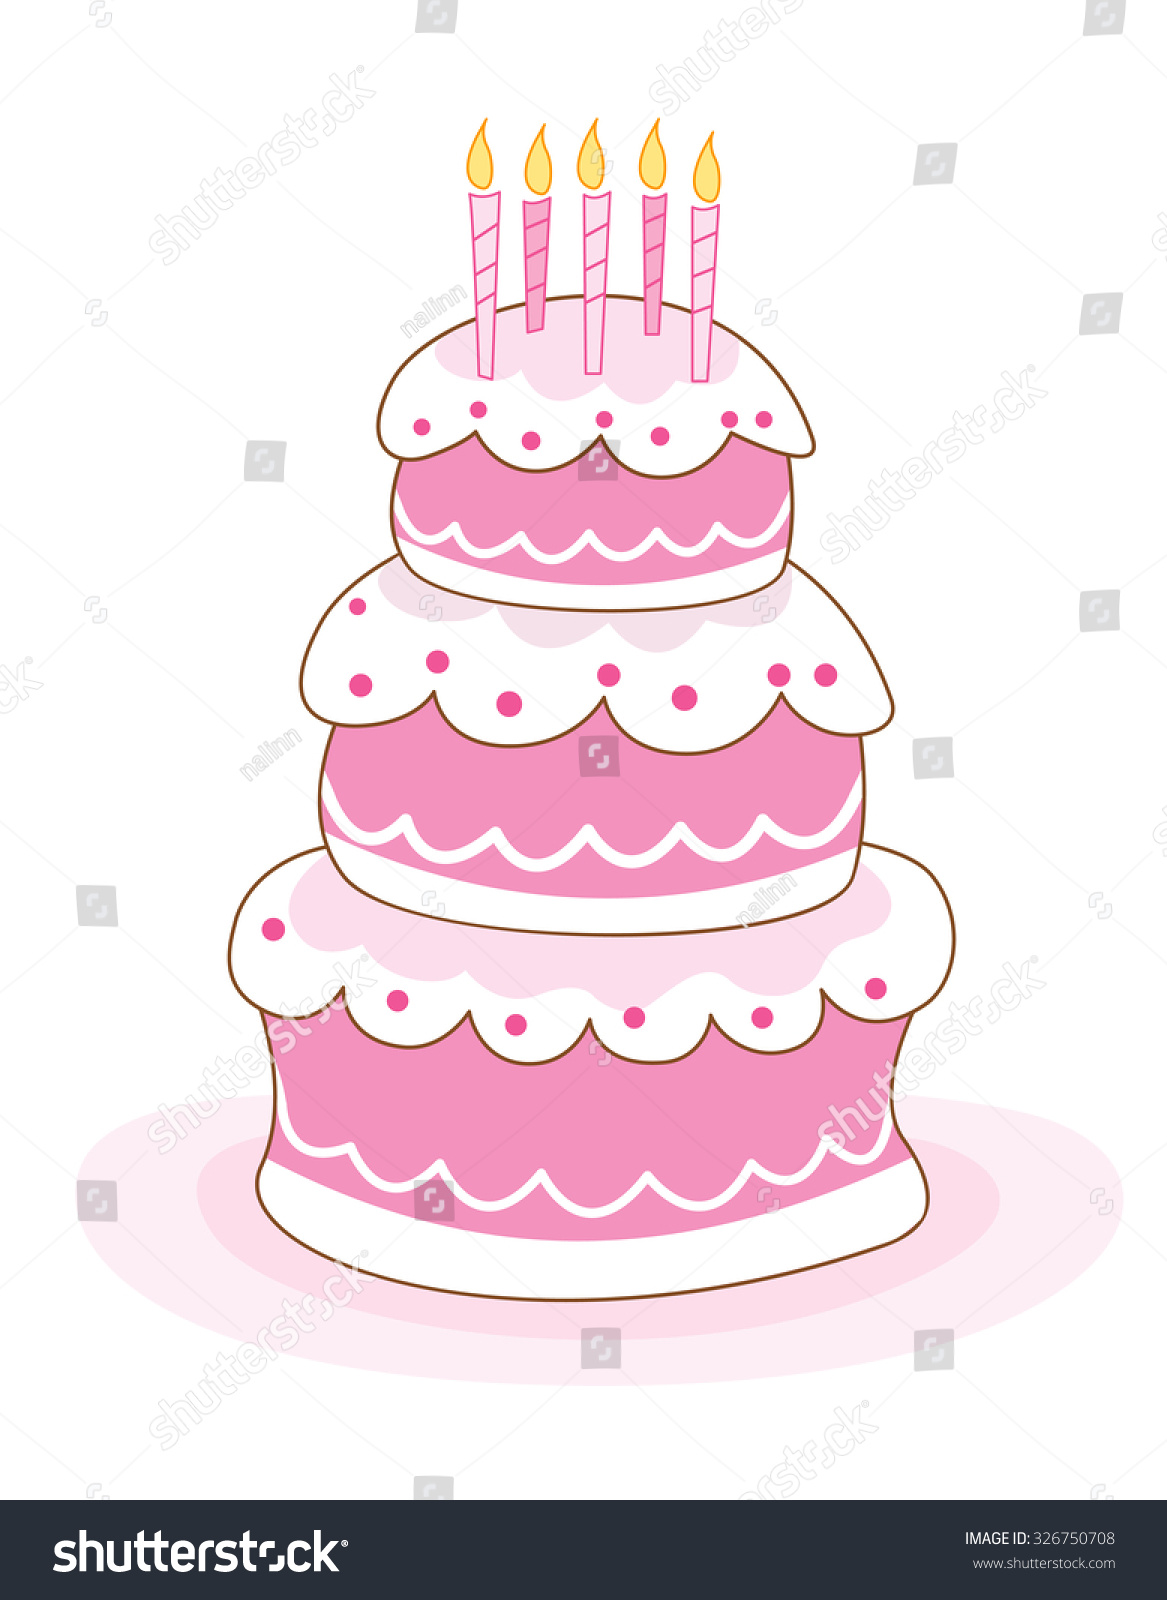 Colorful Layered Birthday Cake Candles Illustration Stock